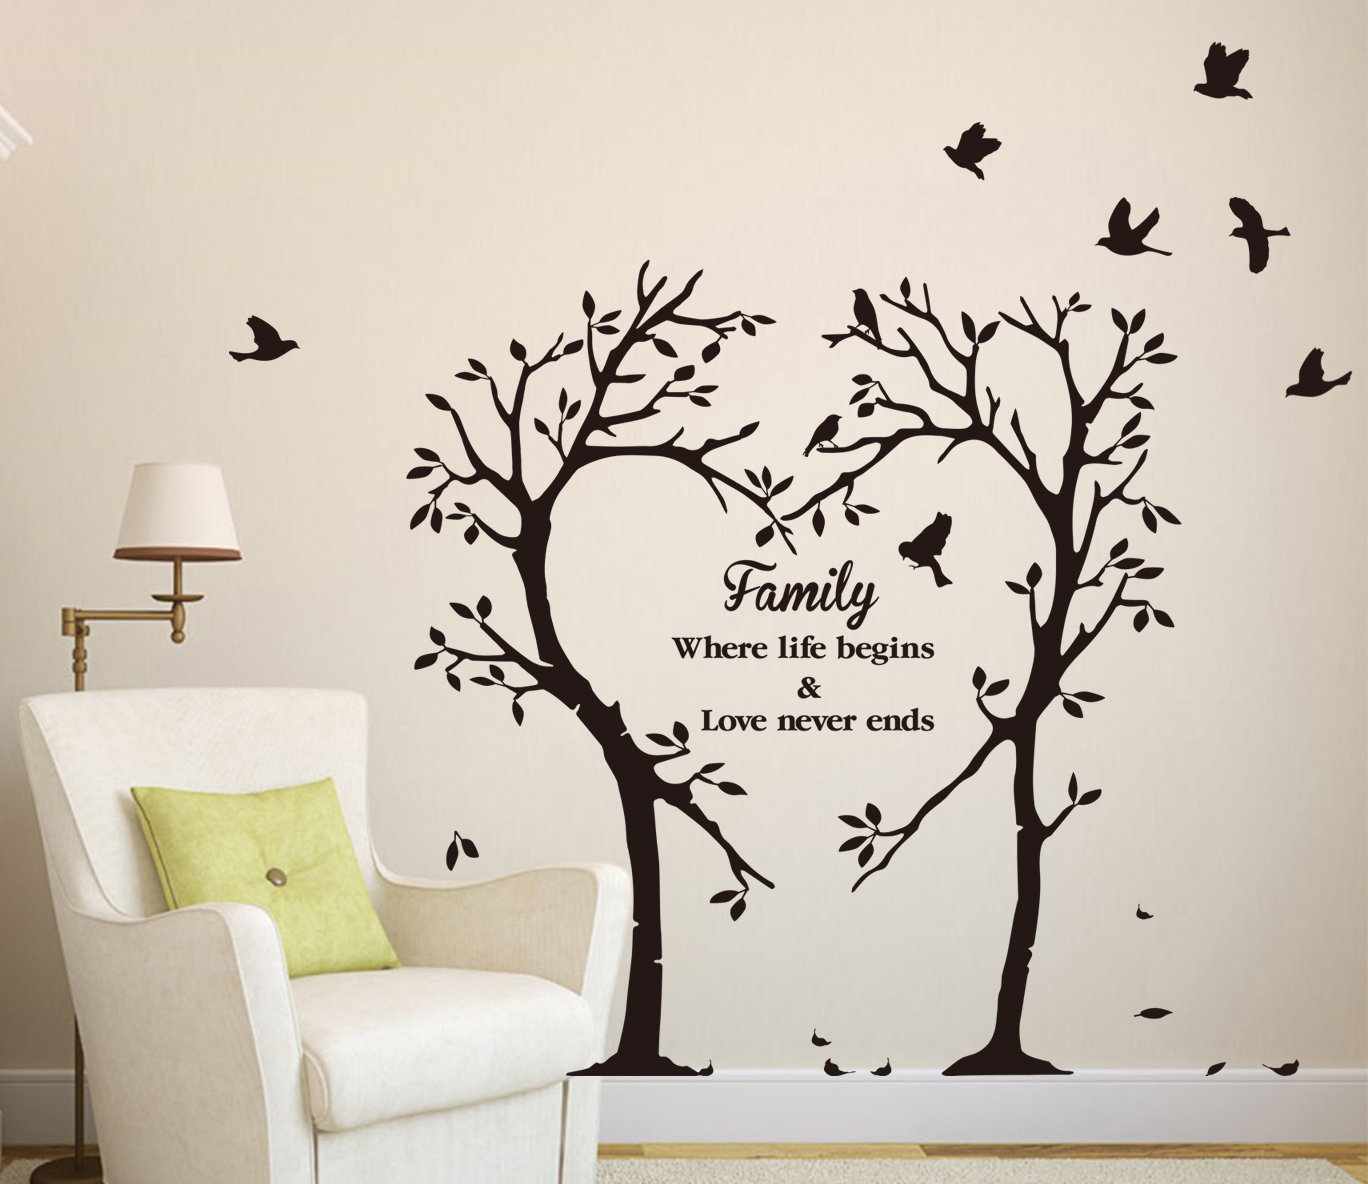 Wall Art Decals For Living Room: LARGE Family Inspirational Love Tree Wall Art Sticker